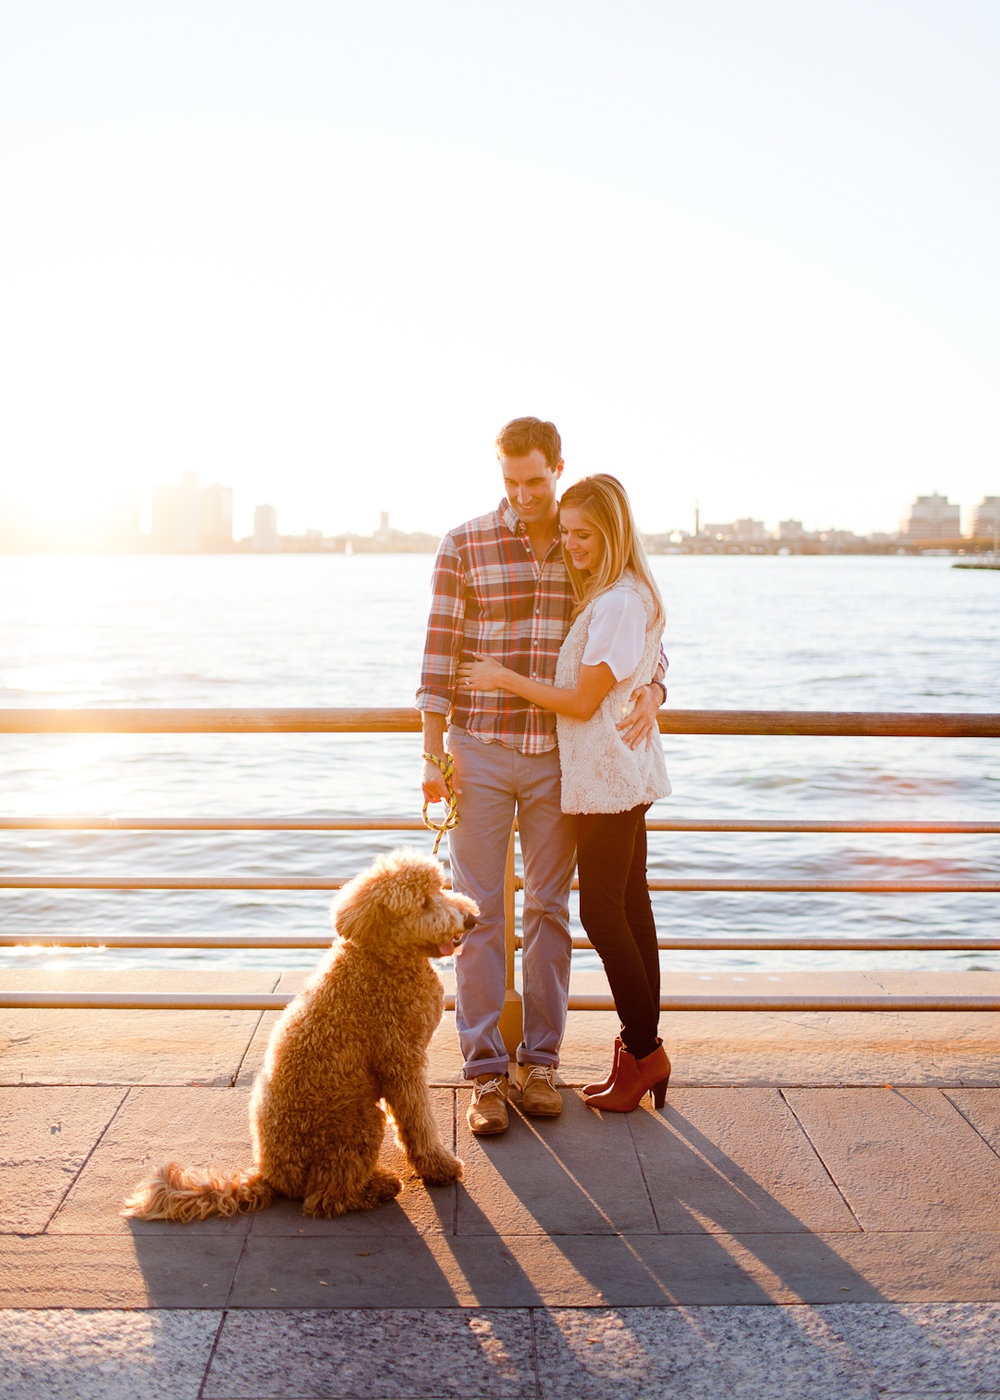 Melissa Kruse Photography - Daniece & Chris West Village Engagement Photos-151.jpg